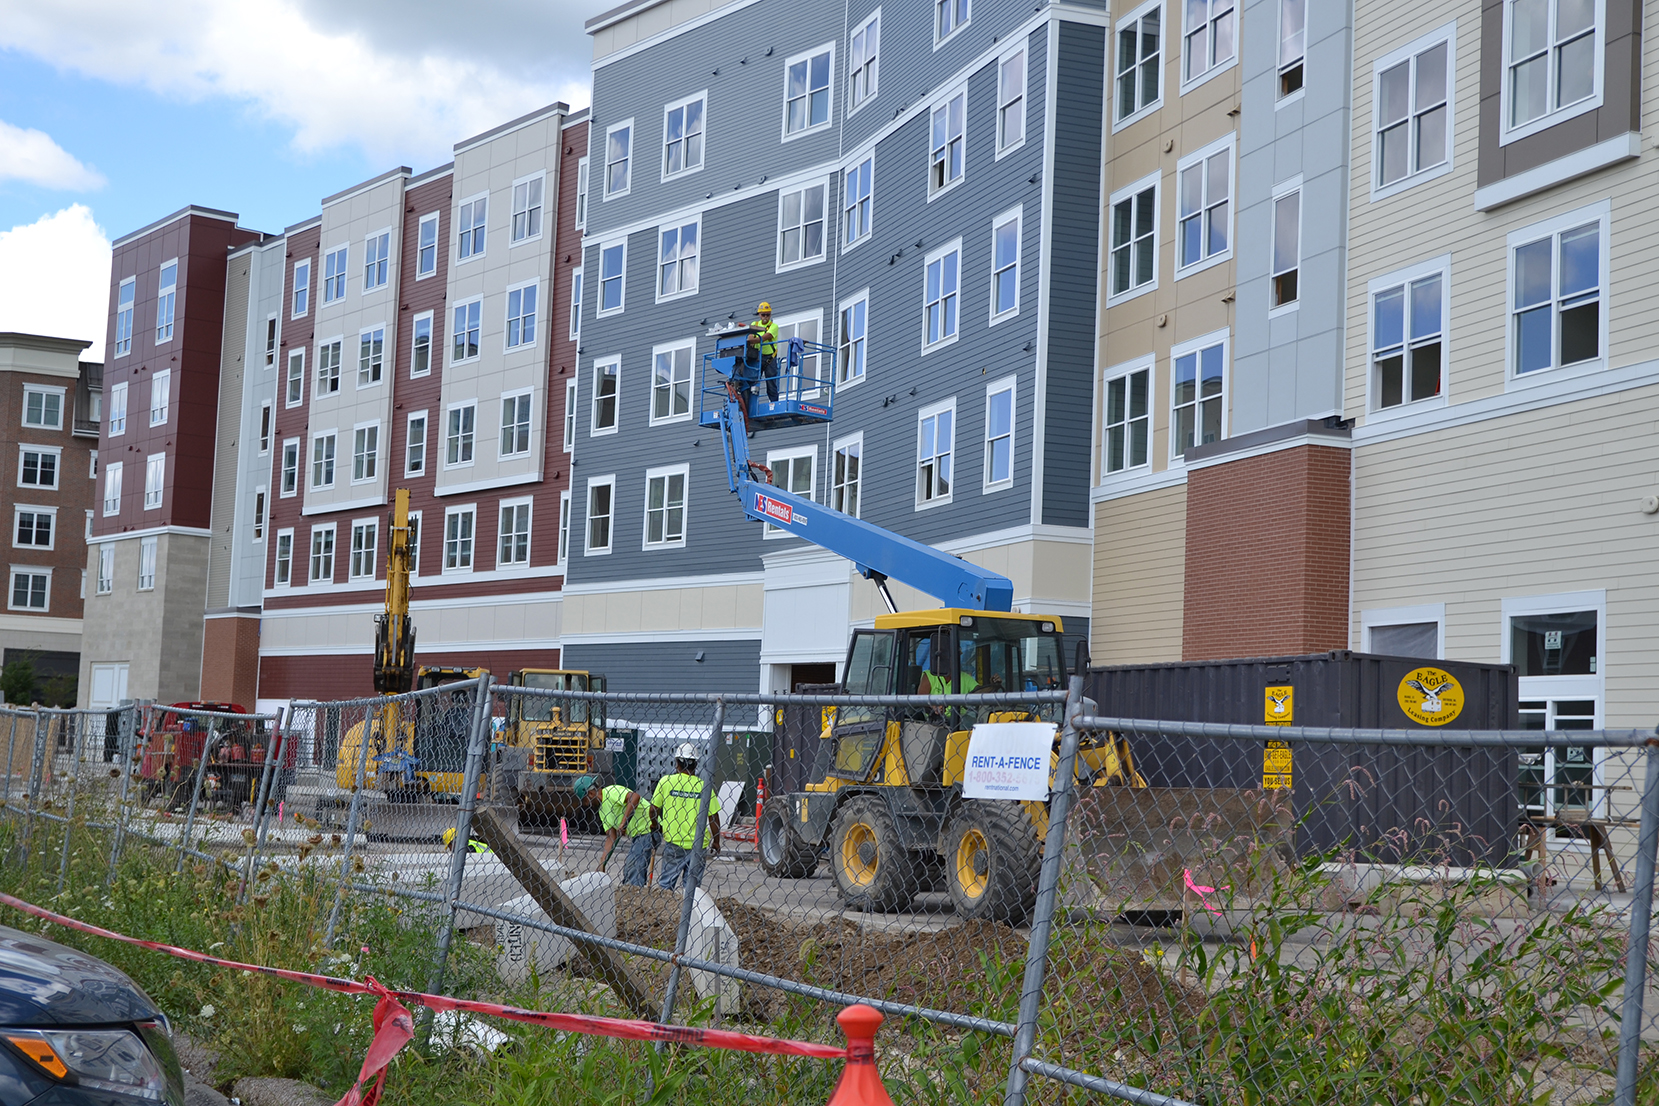 Construction crews are seen at The Oaks on the Square apartment complex in Storrs Center on Aug. 27, 2015. UConn students still awaiting apartments will be commuting or staying in hotels until the construction is completed.(Amar Batra/The Daily Campus)